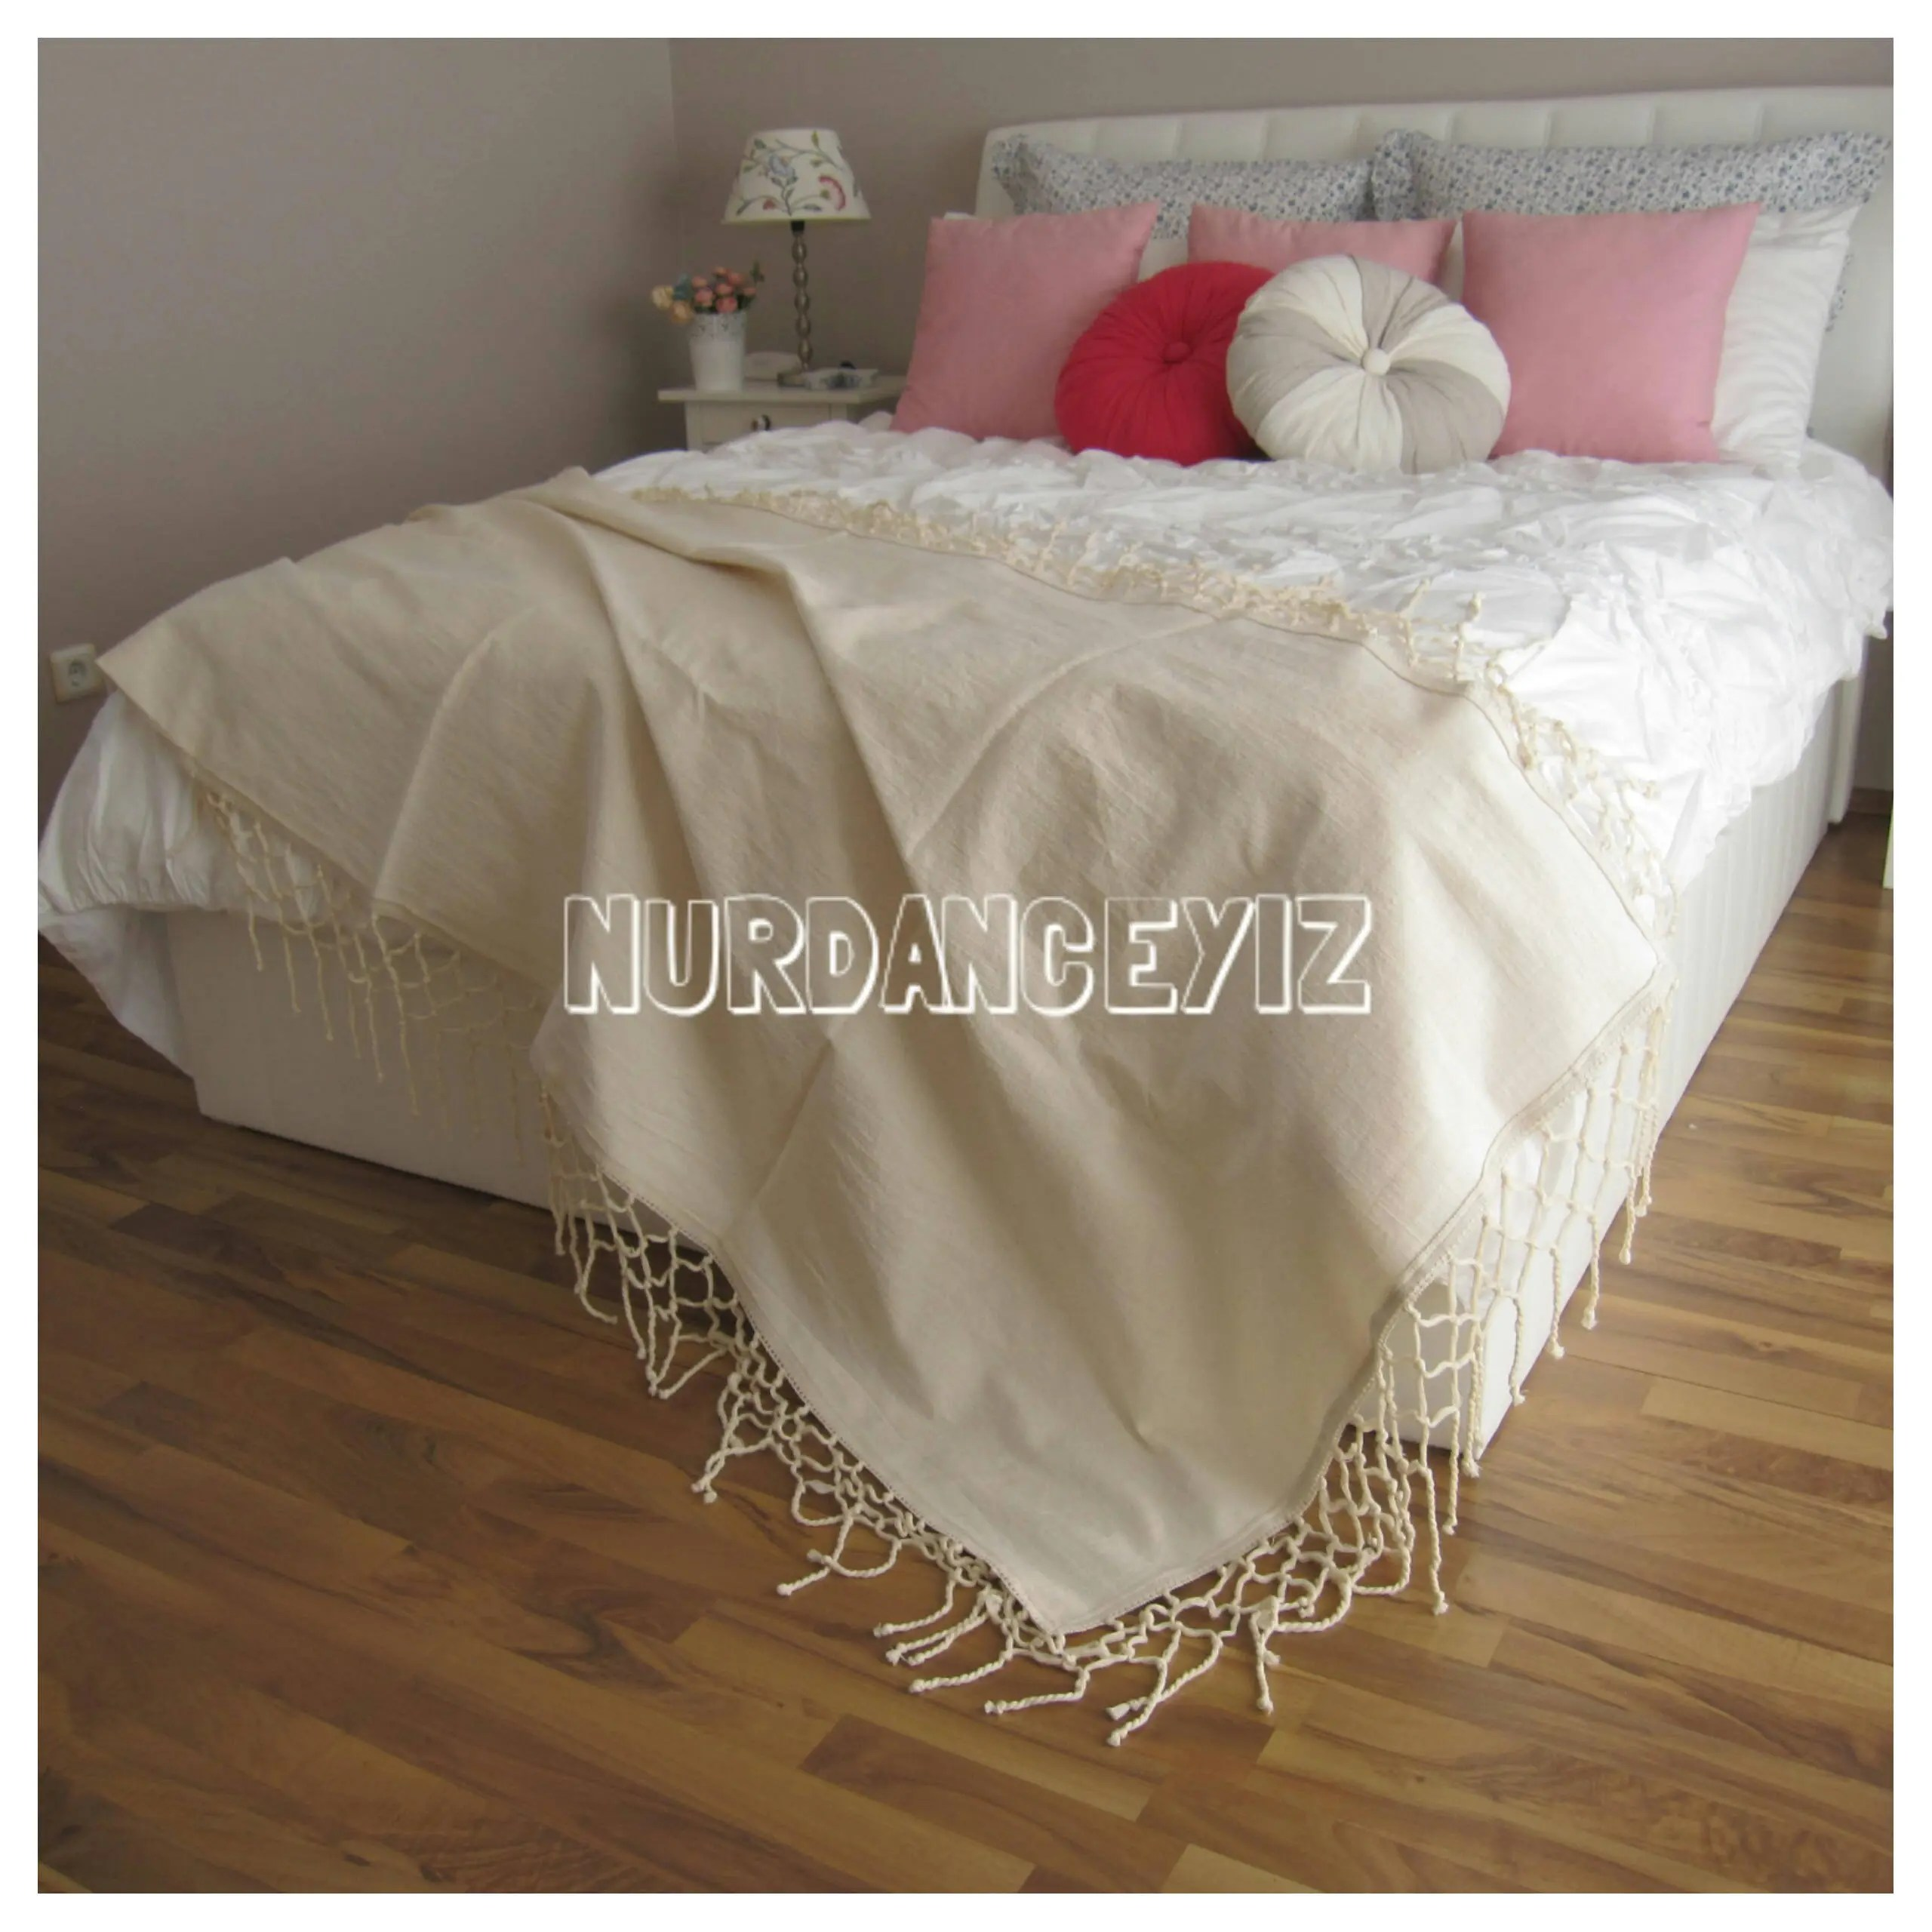 King Size Bed Throws Boho Bed Runner Scarf Cotton Macrame Crochet Fringe Trim Coverlet Bed Throws Queen King Shabby Chic Bedding Linen Blanket Country Cottage